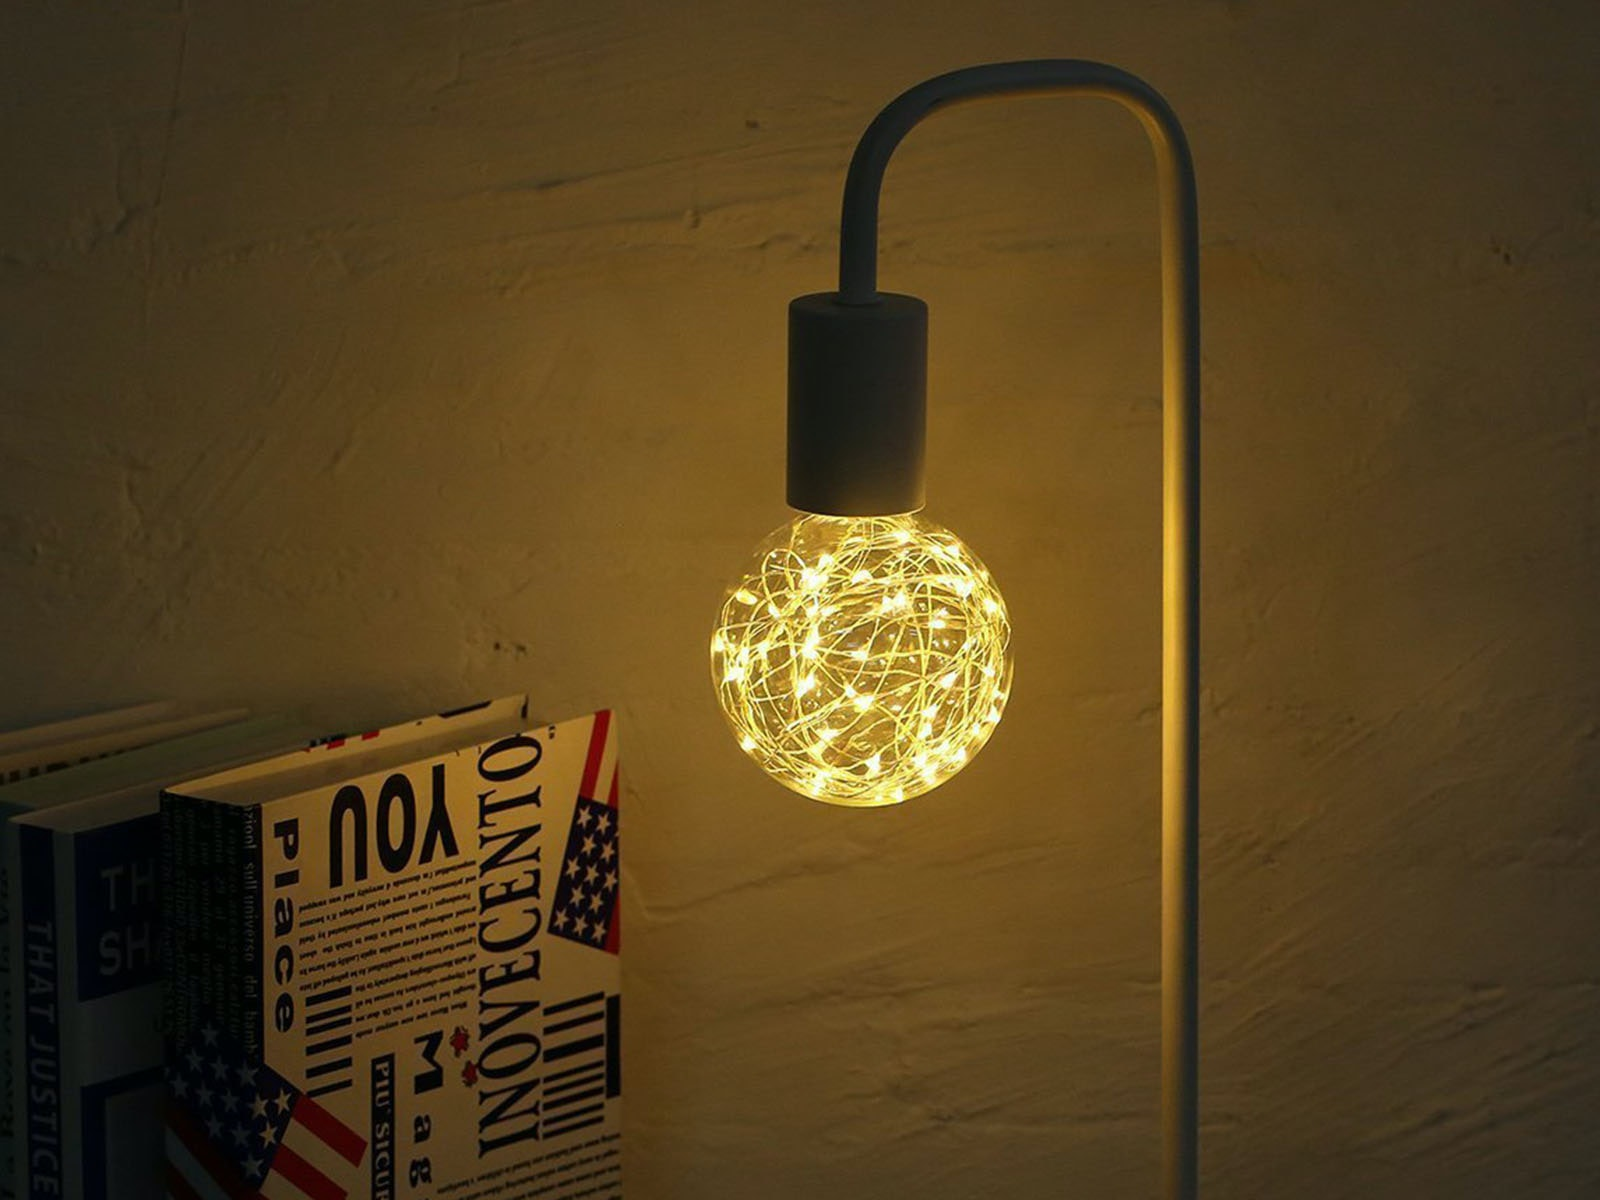 This beautifully complicated retro lightbulb